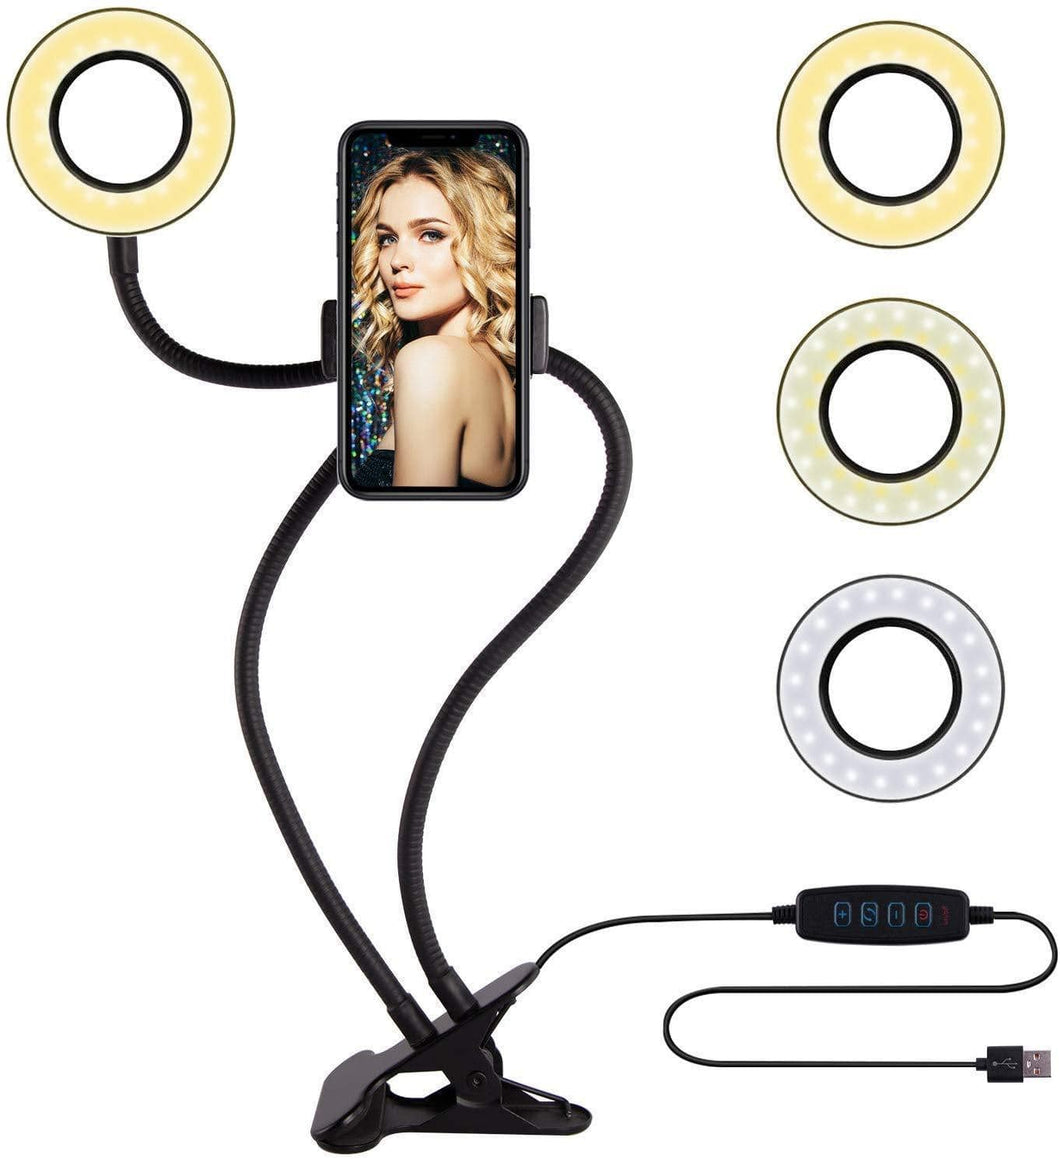 Professional Live Stream Ring Light Shop&Smile PH - The Store for Happy Filipino Shoppers